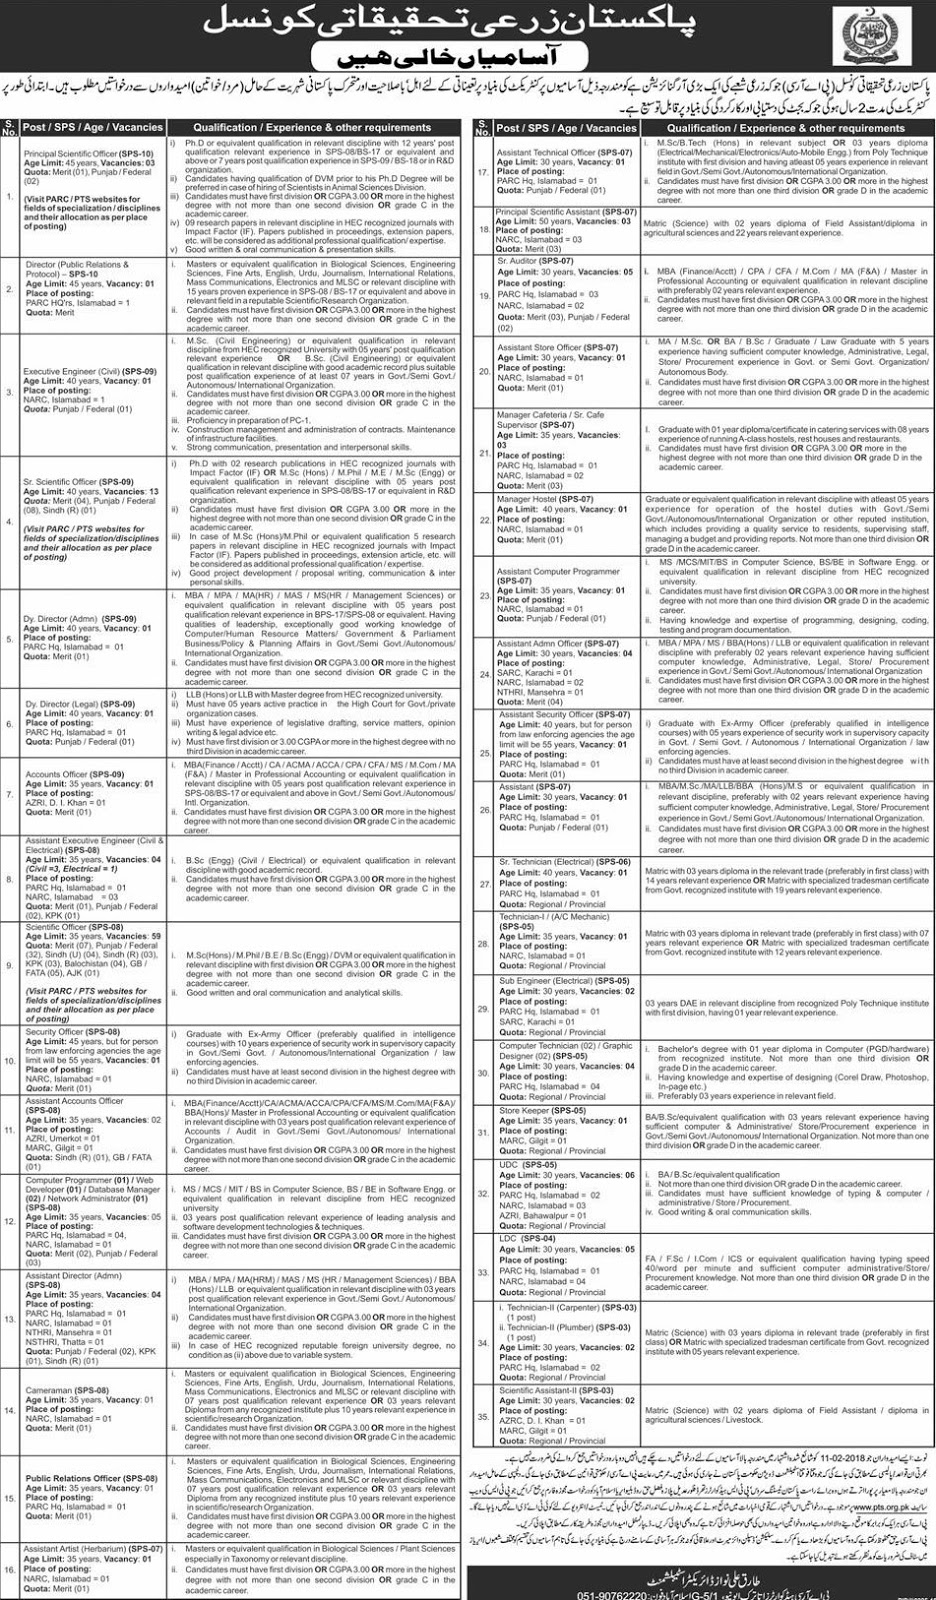 Pakistan Agriculture Research Council (PARC) Jobs 2019 | 144+ Multiple Vacancies   pakistan agriculture research council jobs 2018-19  parc jobs 2019  narc jobs 2018  parc jobs advertisement 2019  narc islamabad jobs 2018  www.parc.gov.pk jobs 2018  agriculture jobs in pakistan  narc national agricultural research center  pts jobs  parc jobs advertisement  pts railway jobs  parc jobs 2018  www.pts.com.pk jobs  parc jobs advertisement 2018  www.parc.gov.pk jobs 2018  pts jobs 2018